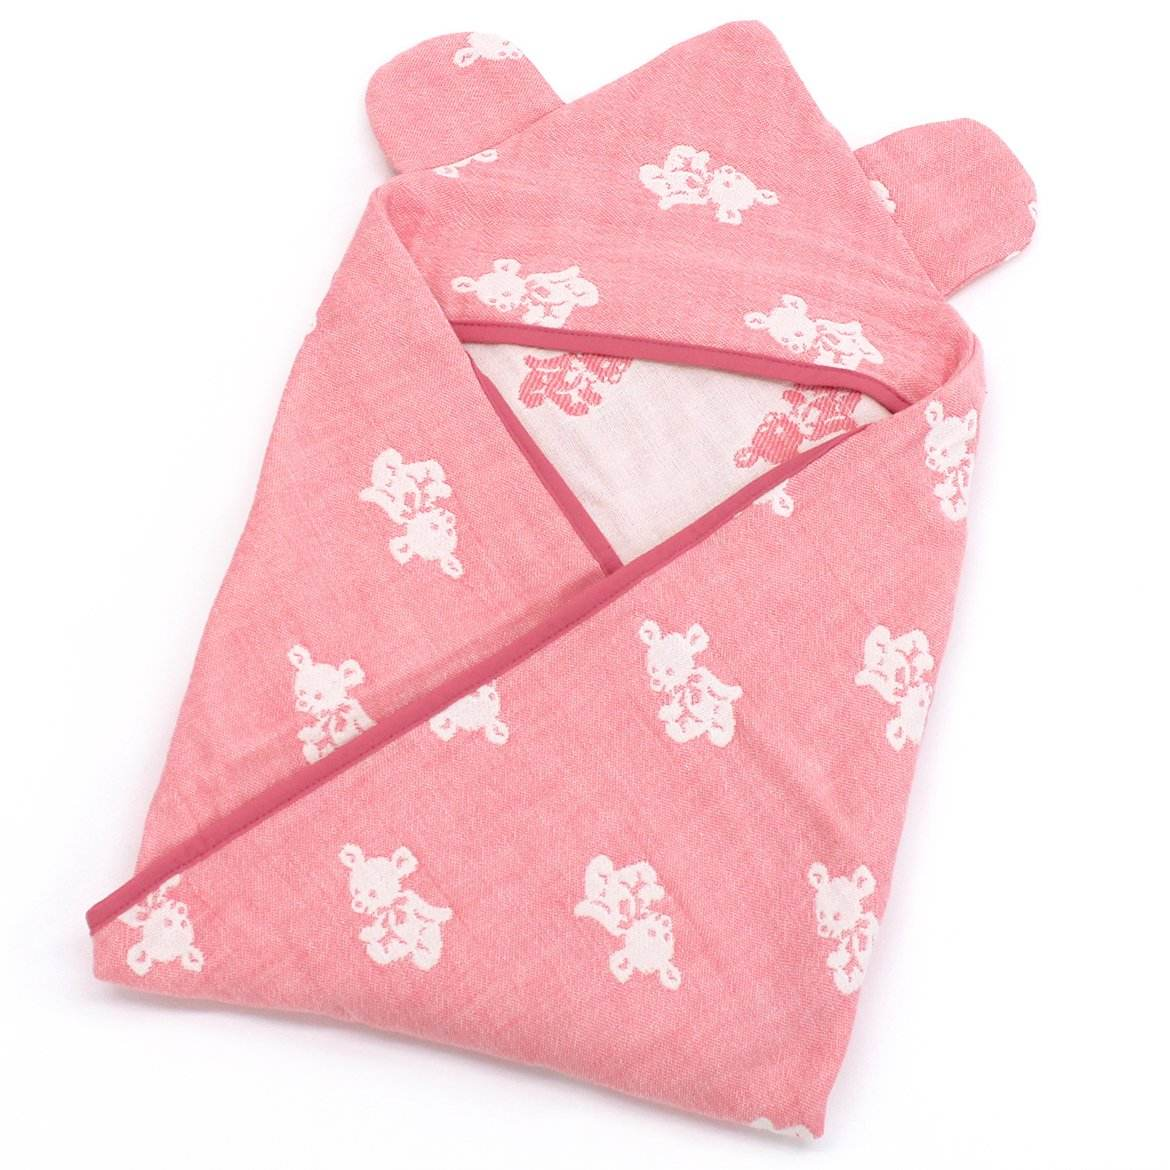 4 layer gauze swaddling clothes with hood. made in Japan cotton 100% Hooded Baby swaddle blanket Pink